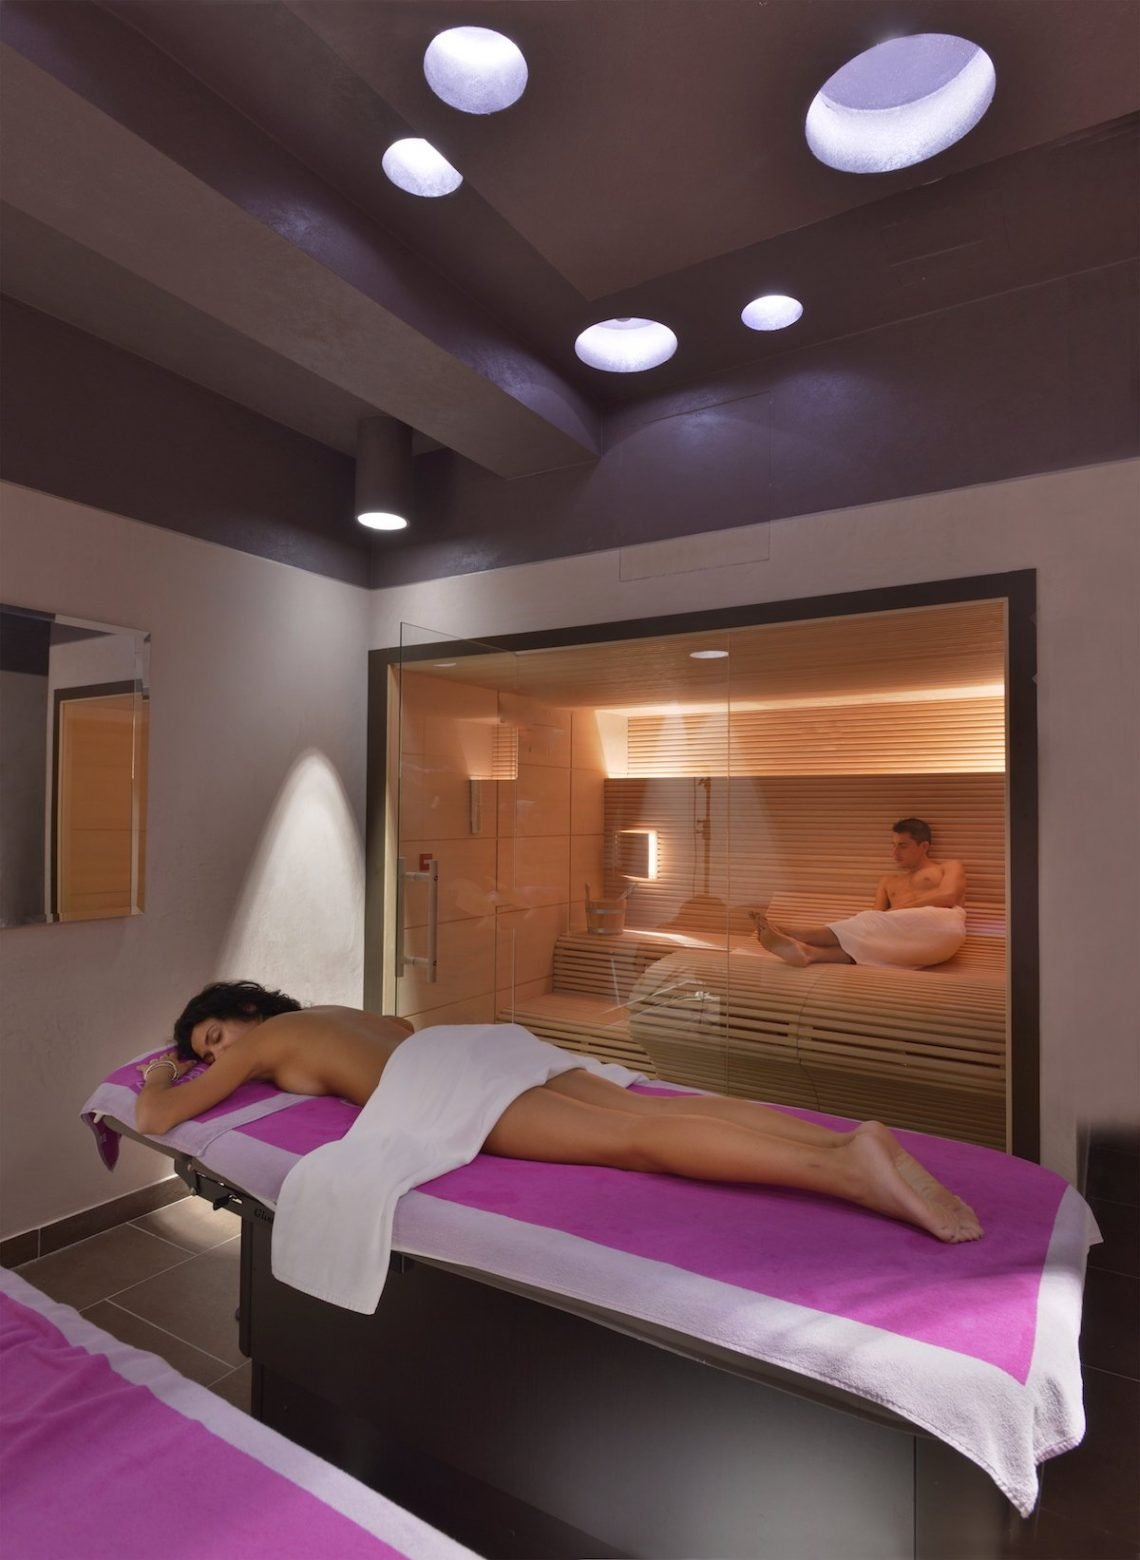 Aqualux Spa Wellness Hotel Bardolino Private Spa Sauna Liege Frau Mann Relax